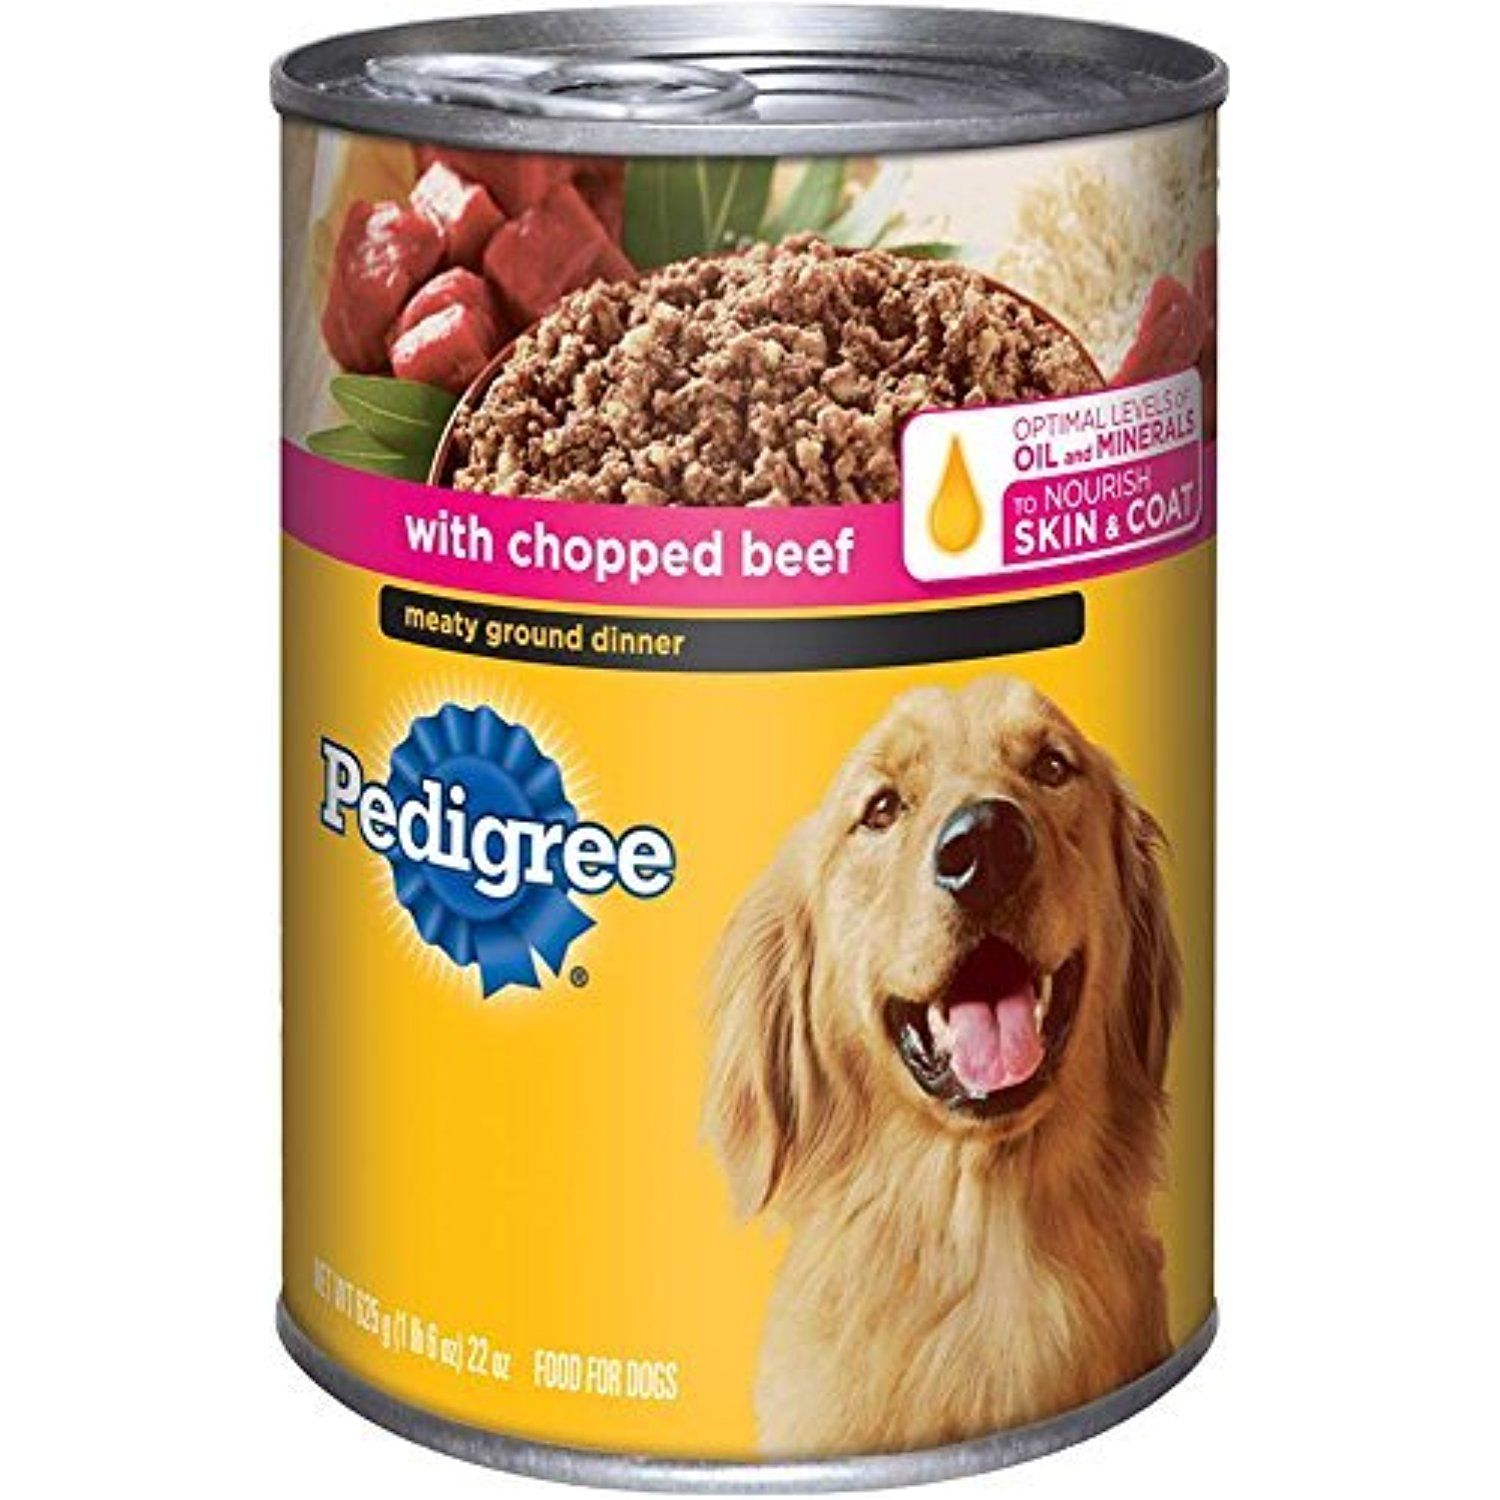 Pedigree meaty ground dinner with chopped beef canned dog